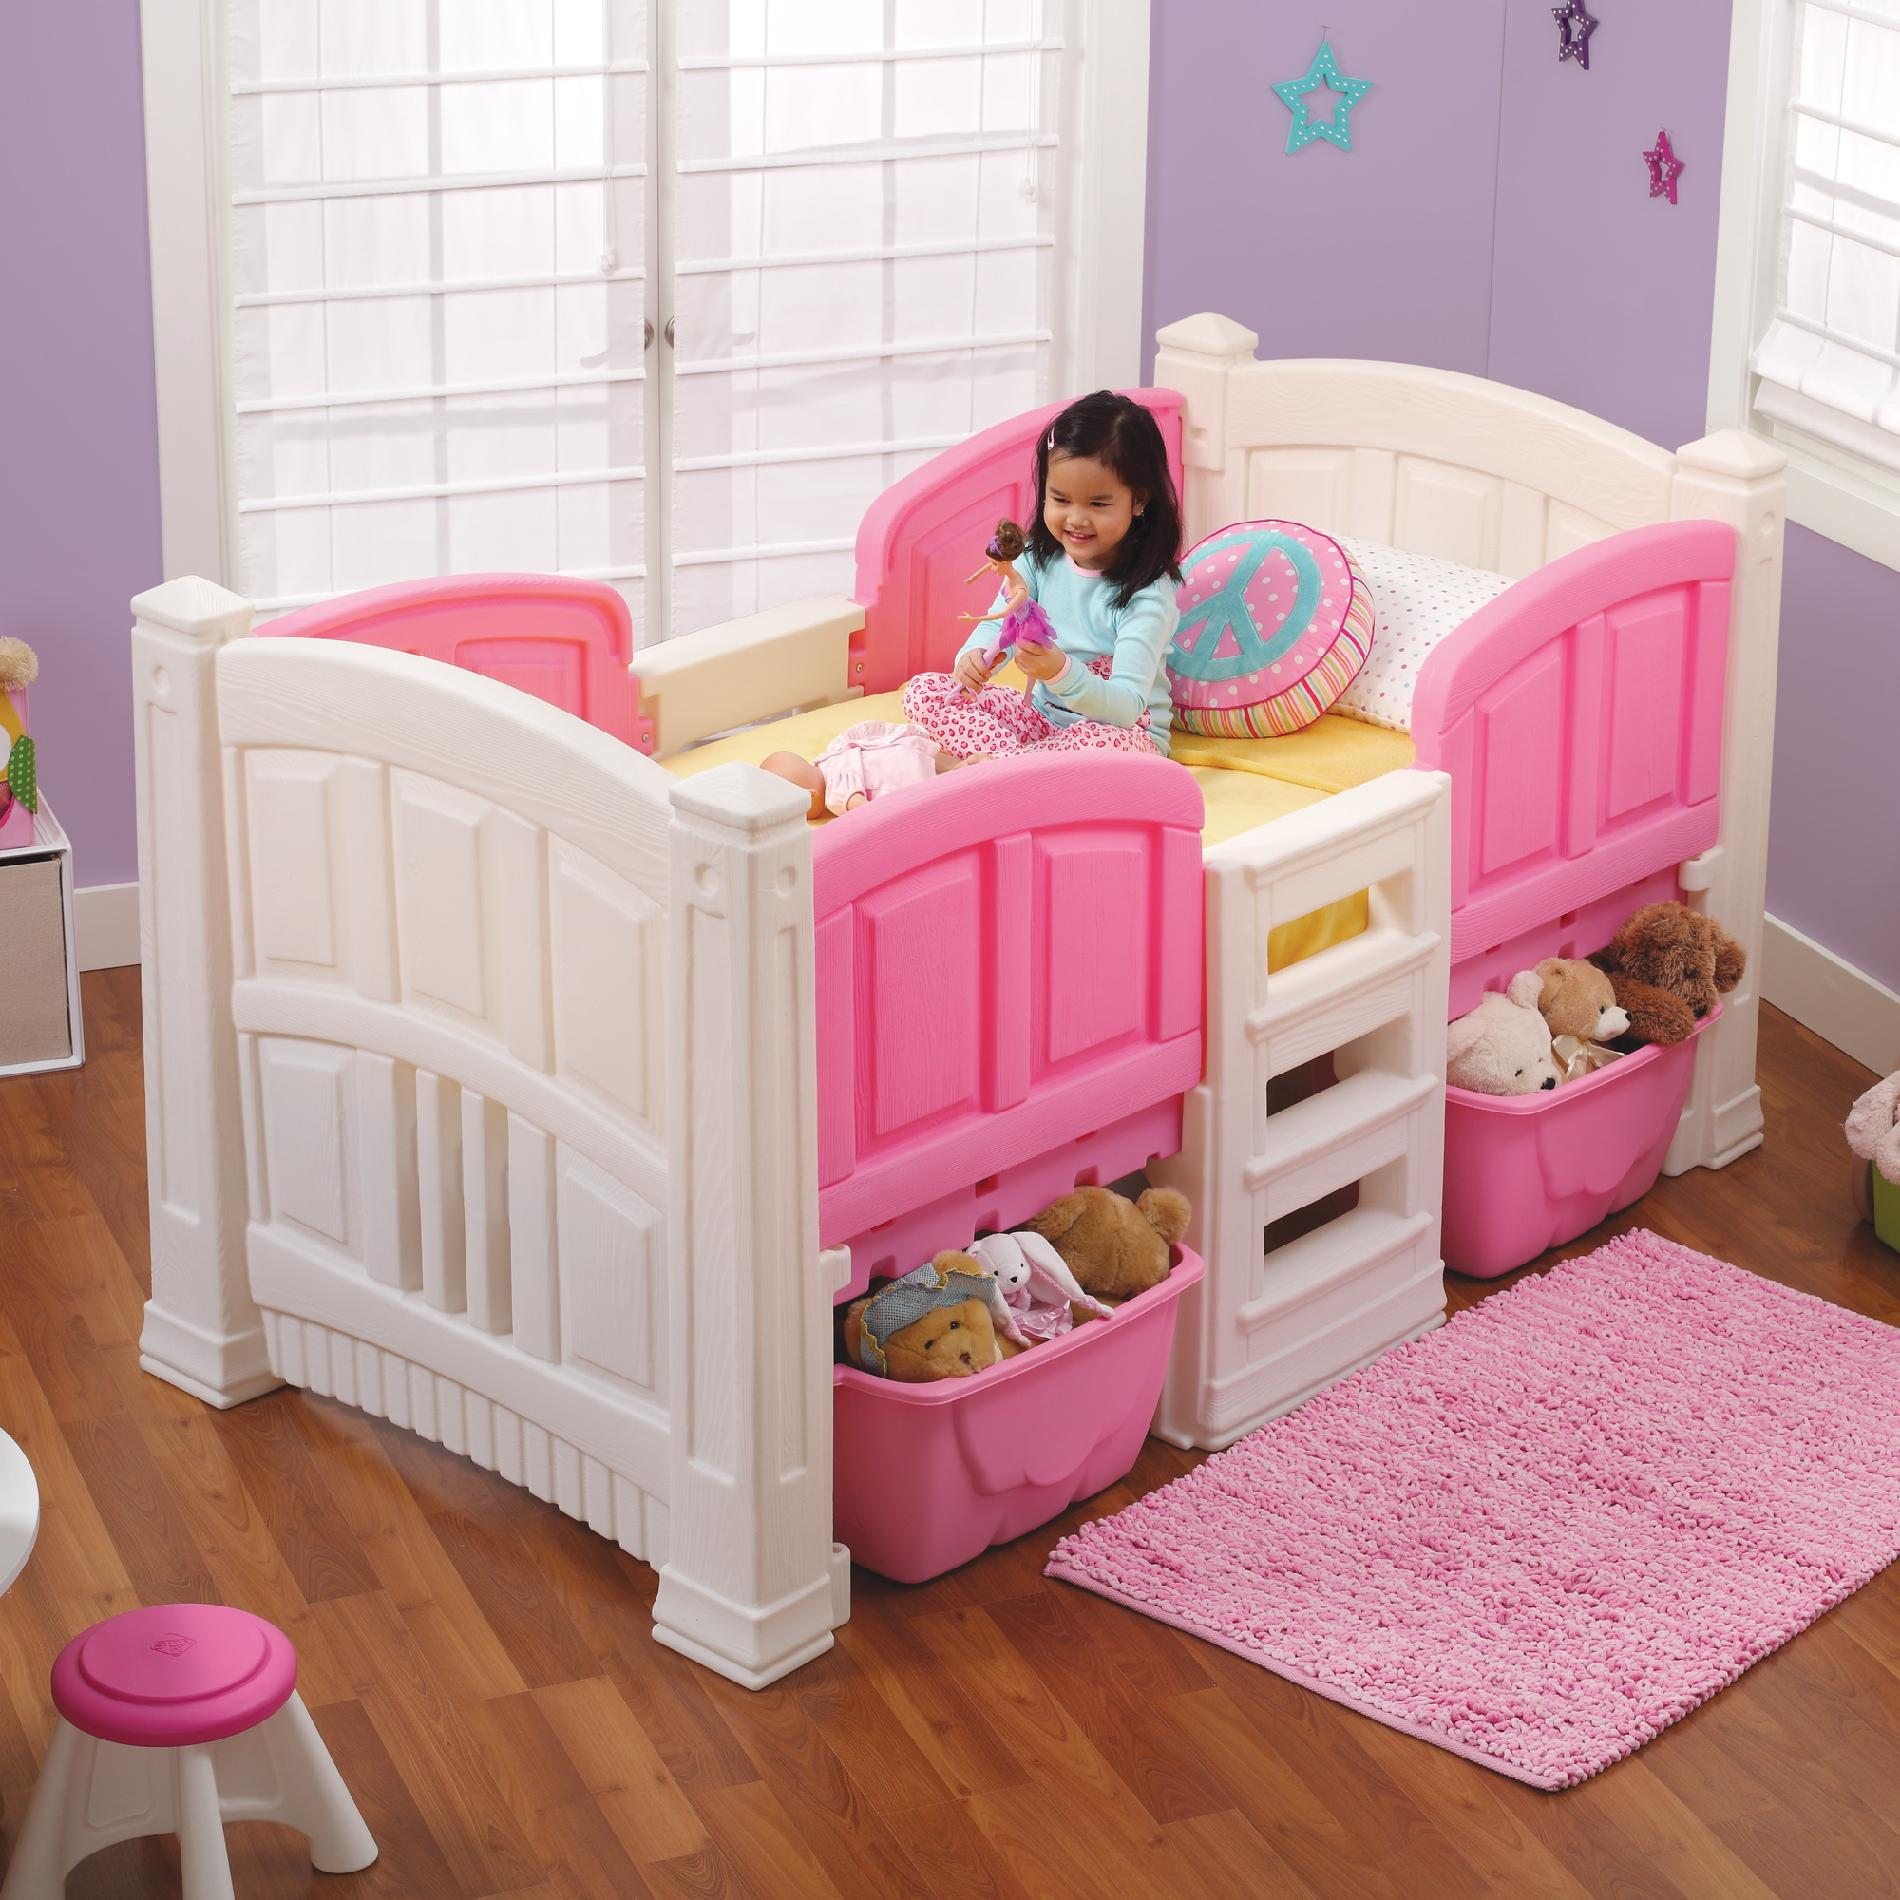 Double Loft Bed For Kids Step 2 Girl 39s Loft And Storage Twin Bed Baby Toddler